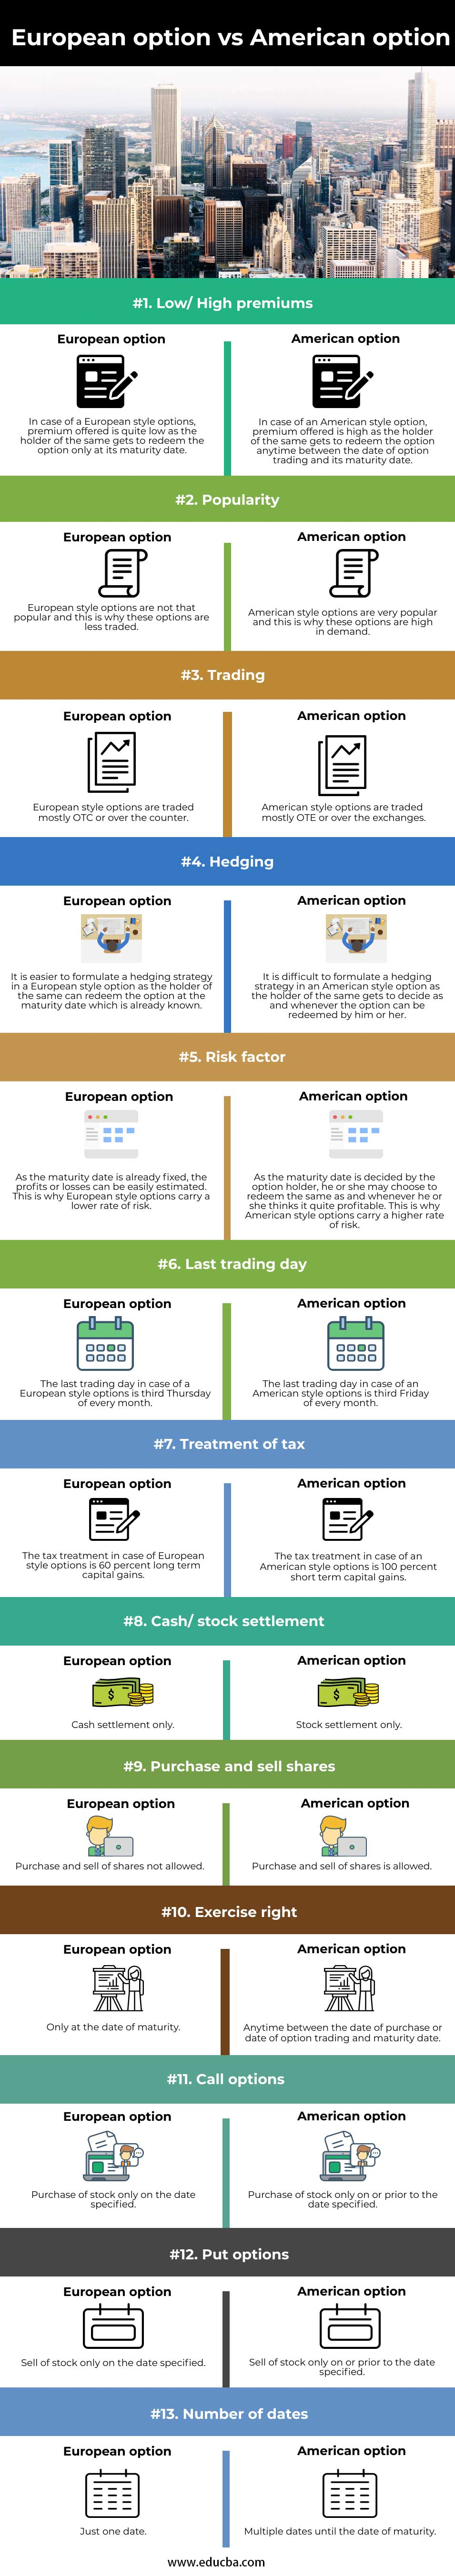 European-option-vs-American-option-info